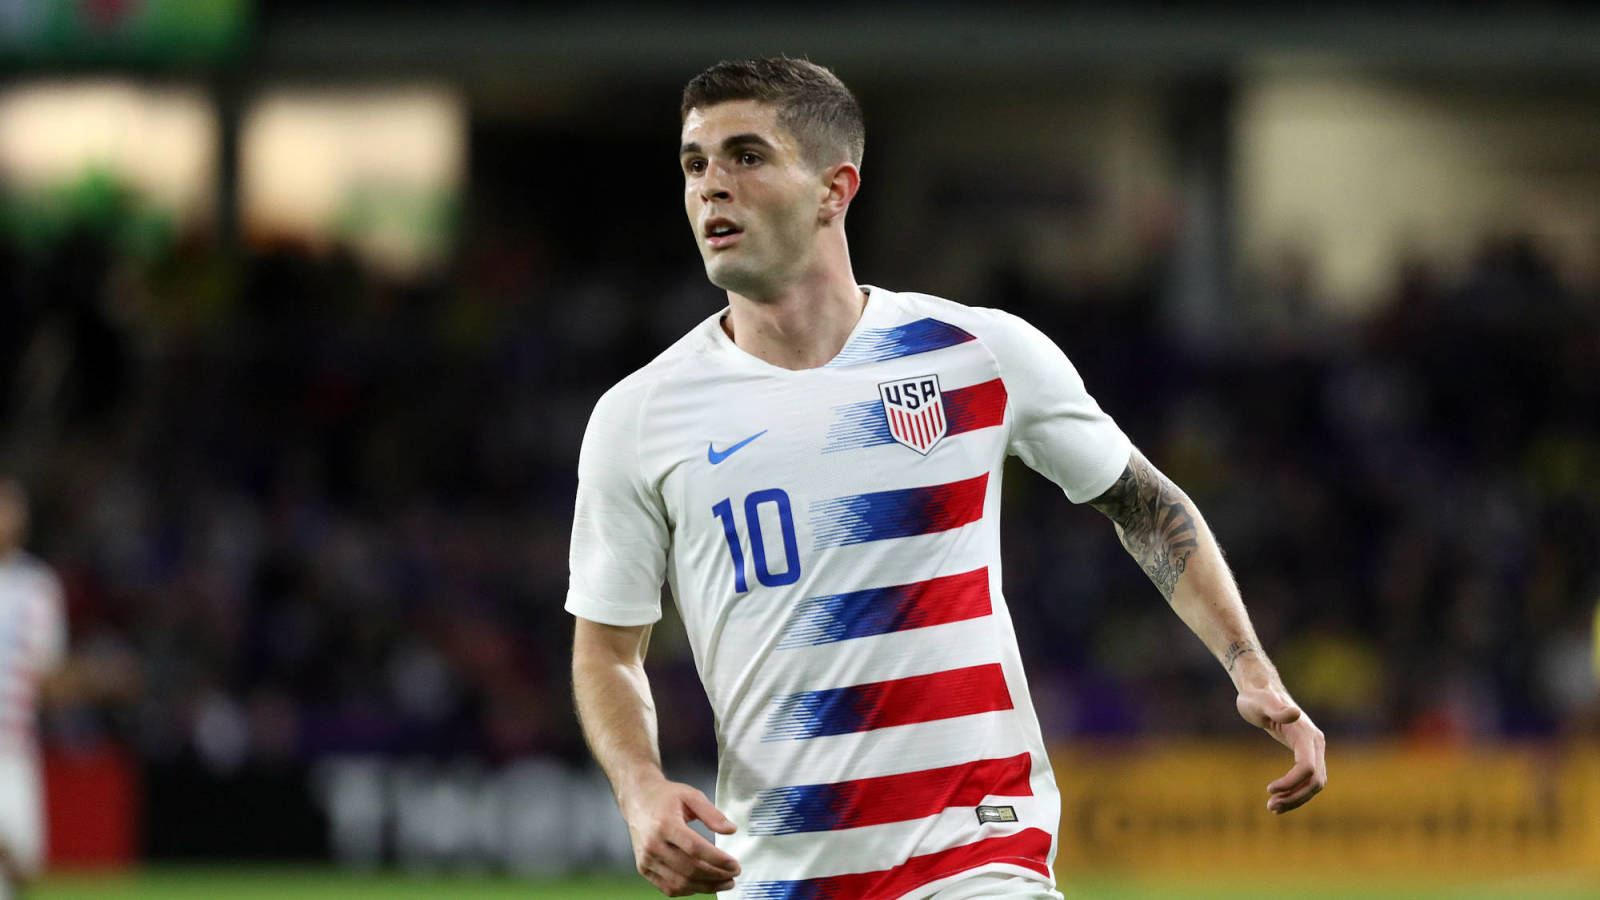 Chelsea Manager Usmnt Star Christian Pulisic On Another Level After Latest Goal Yardbarker